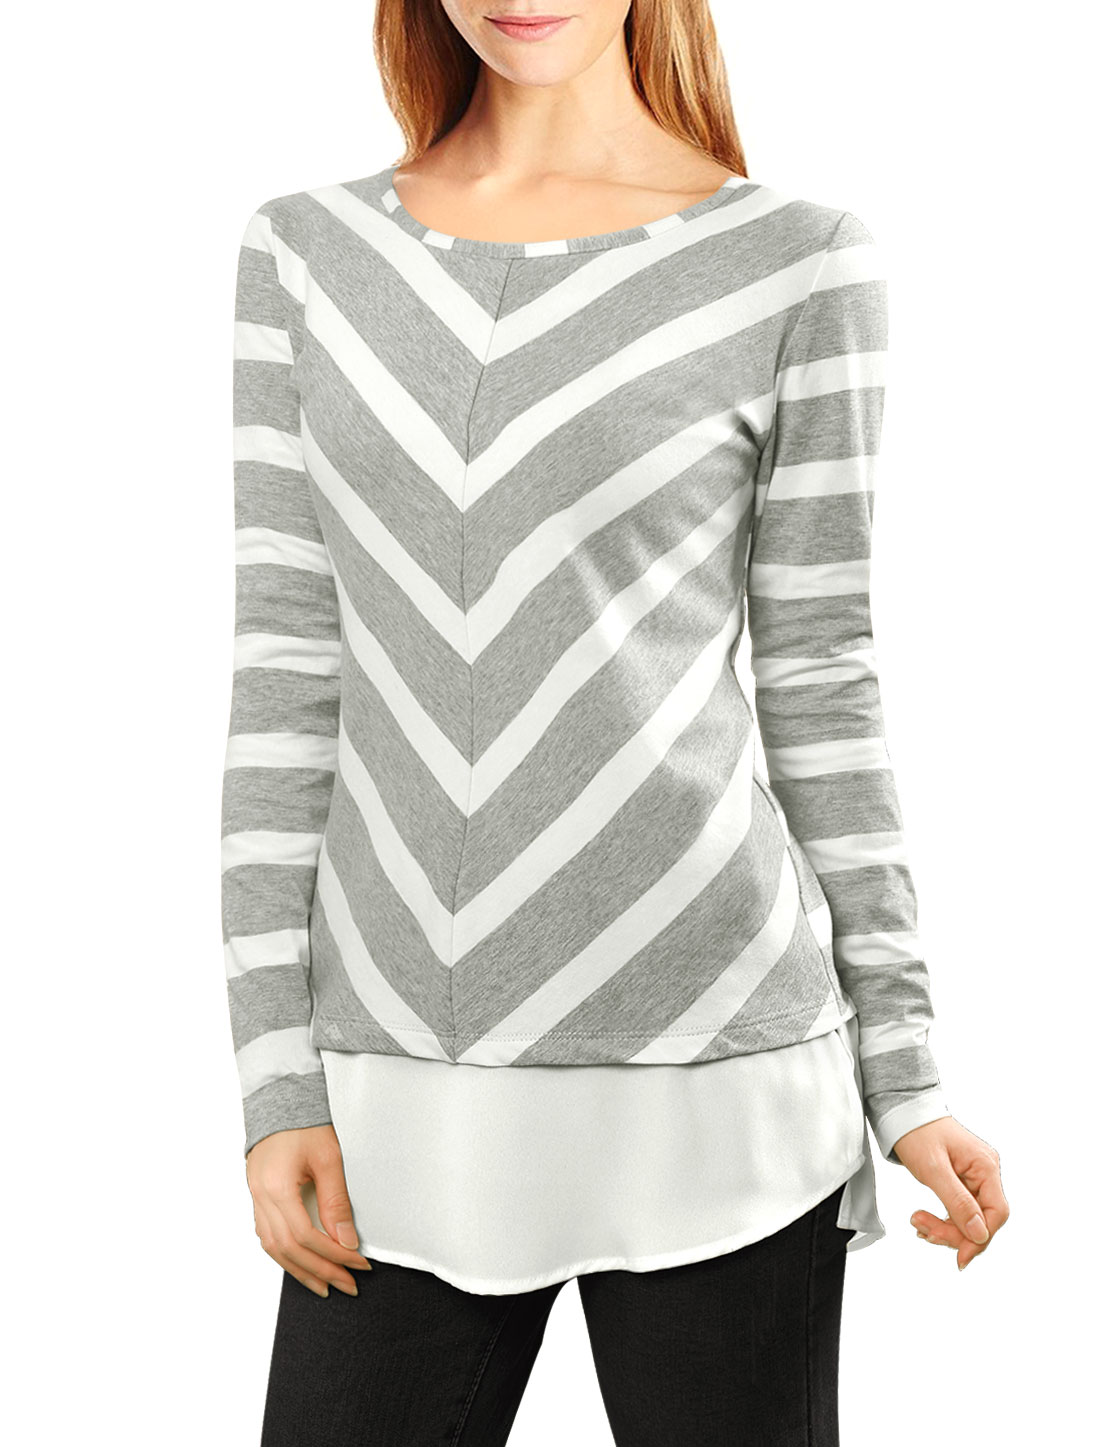 Women Layered Tunic Top in Striped and Chevron Print Gray XL